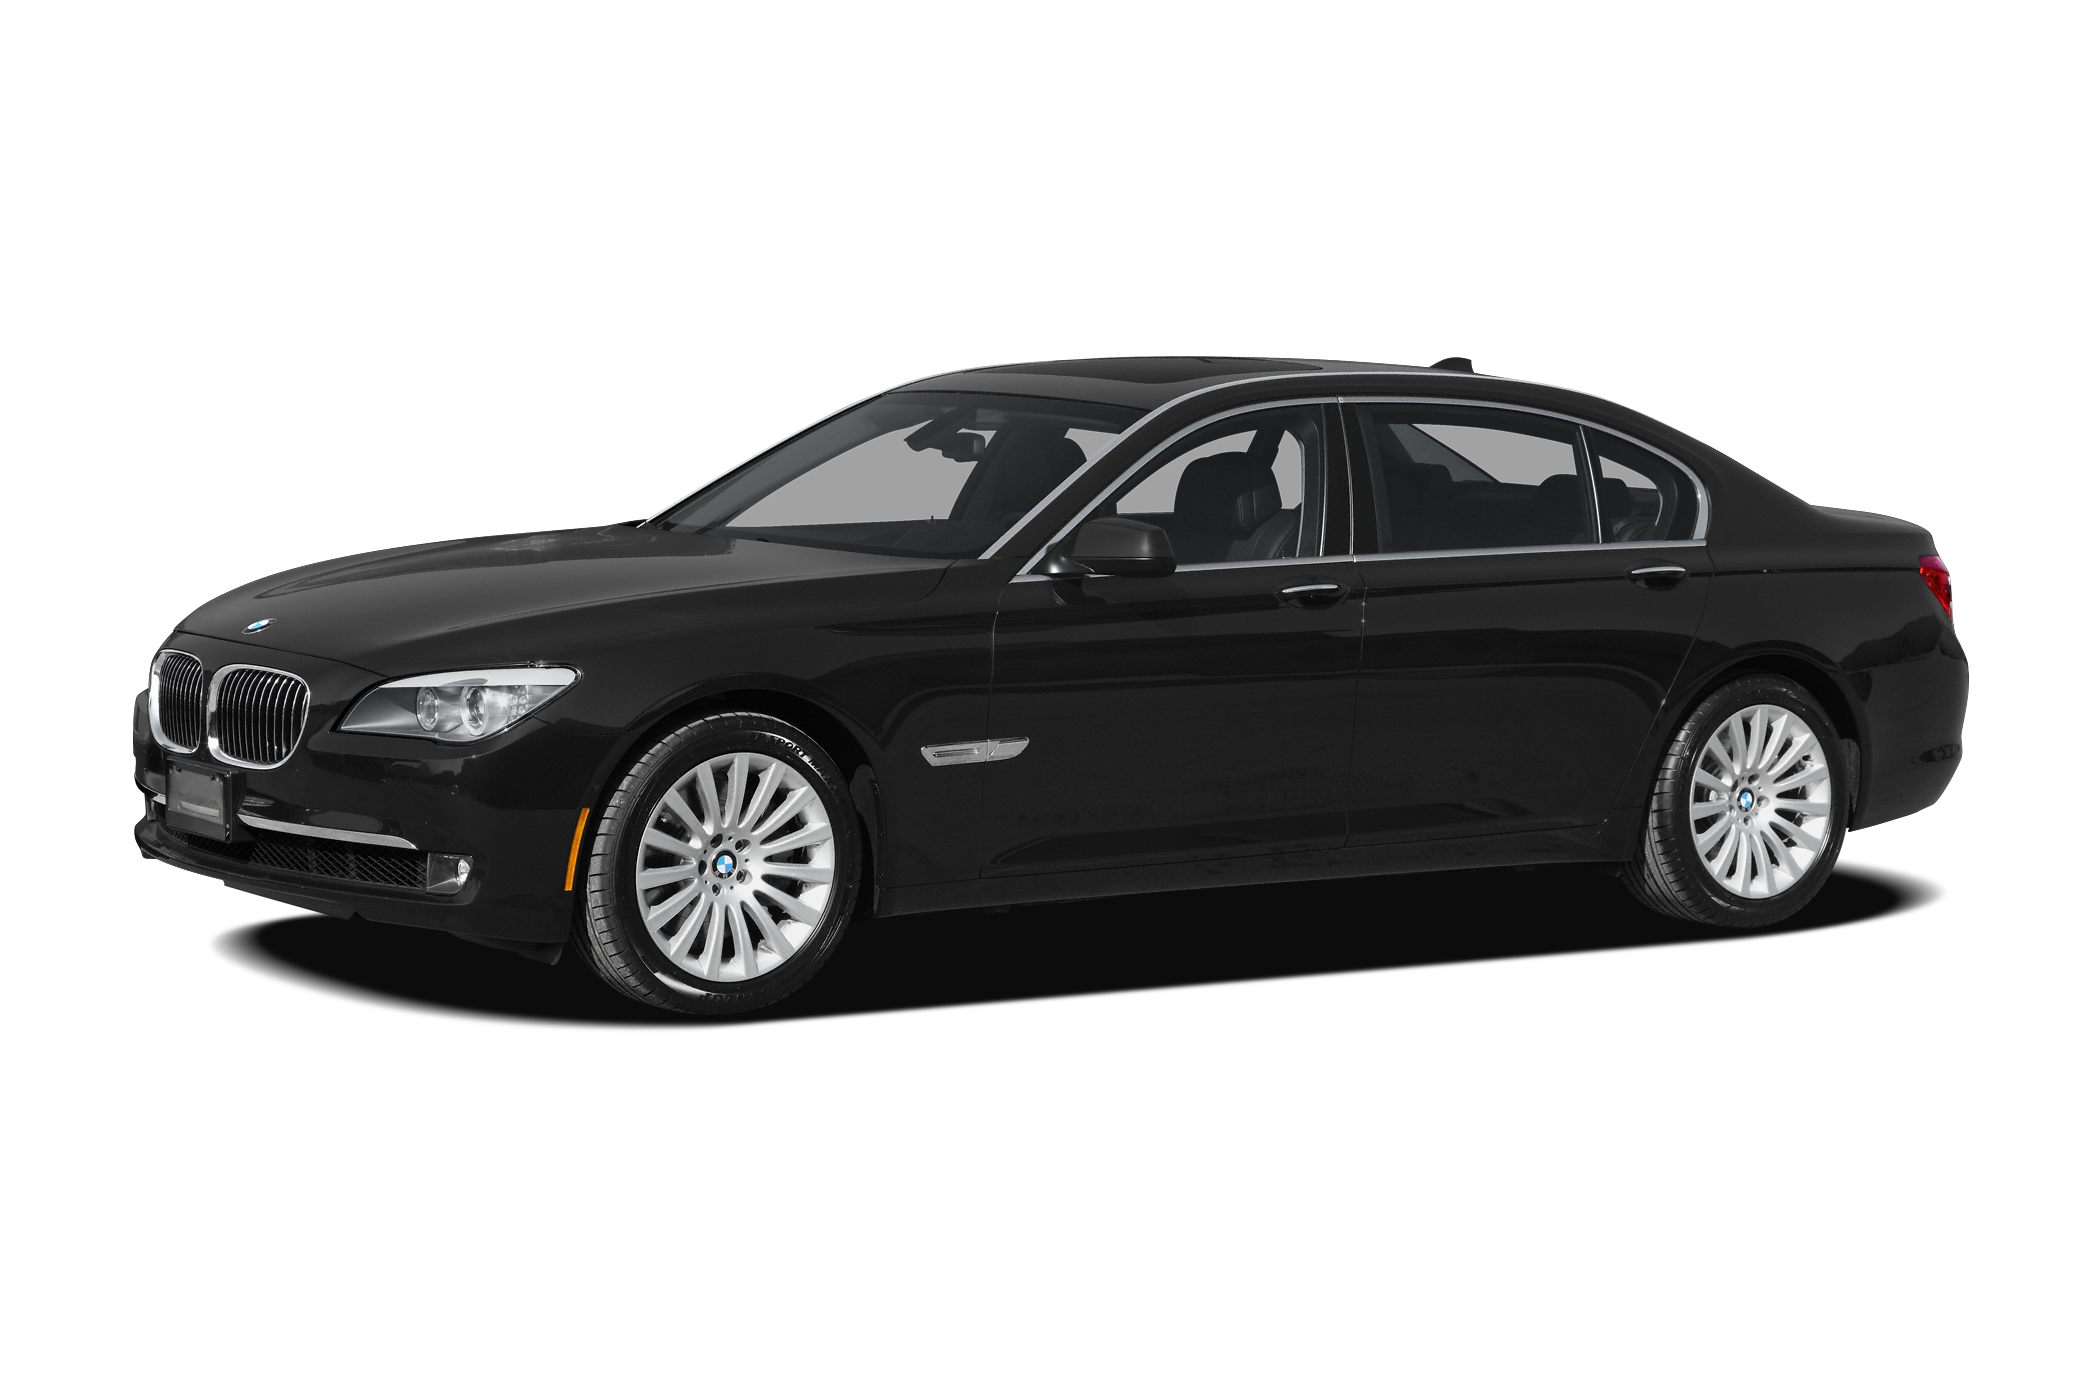 2011 BMW 7 Series 750Li LONG BODY BLACK ON BLACK Premium Sound Sport package Heated seats Lux